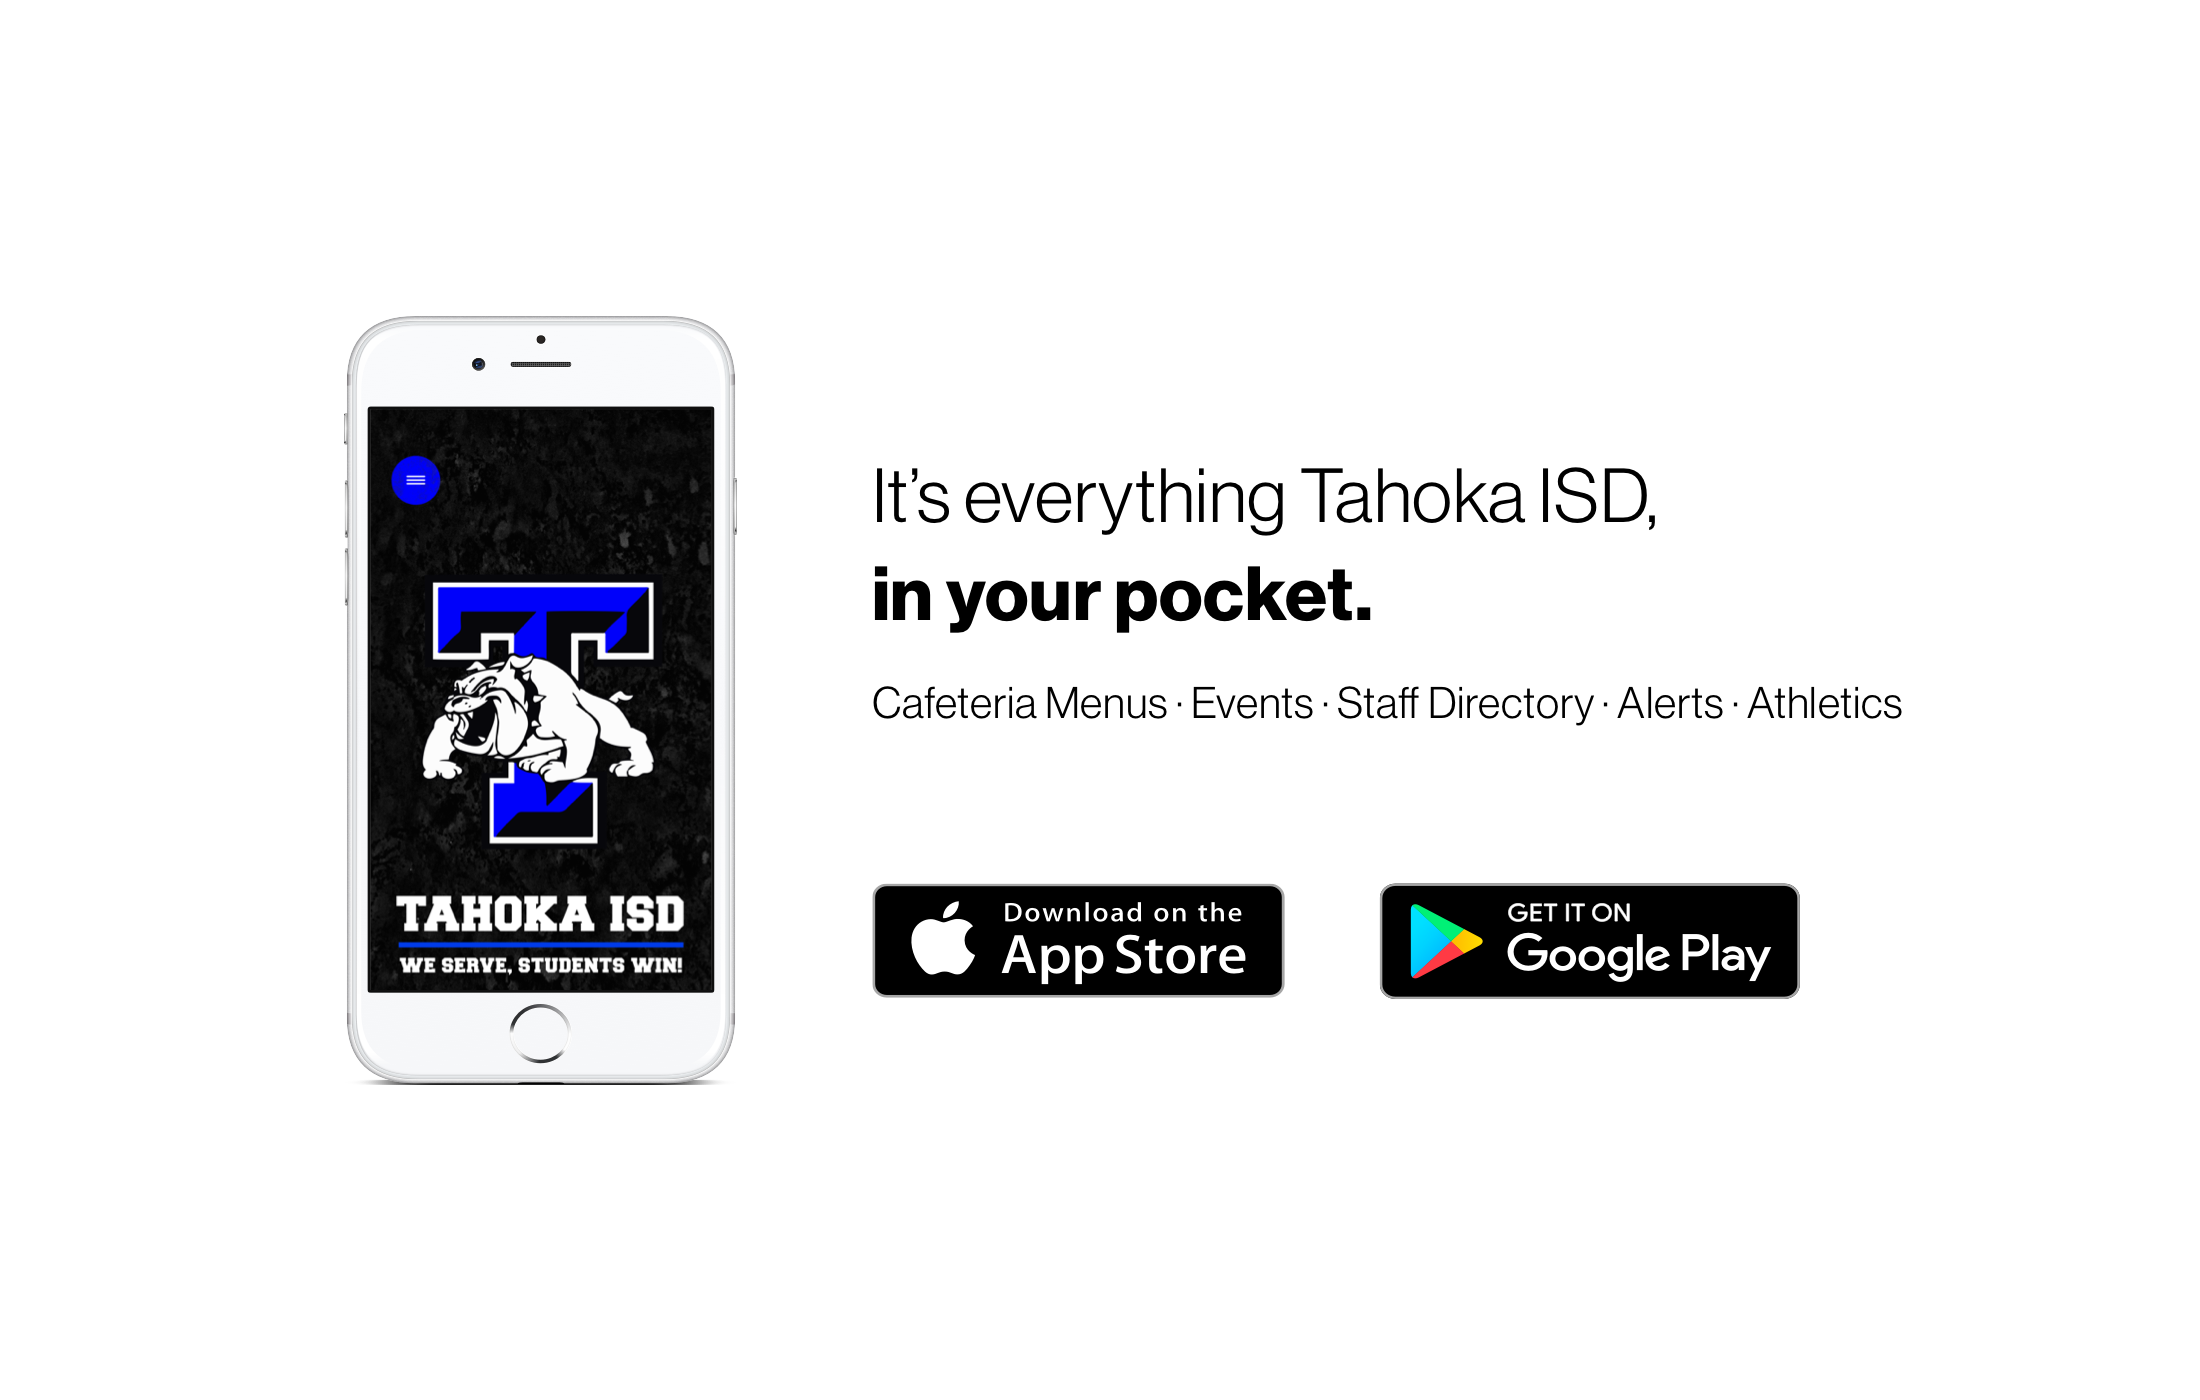 TISD now has a new app!